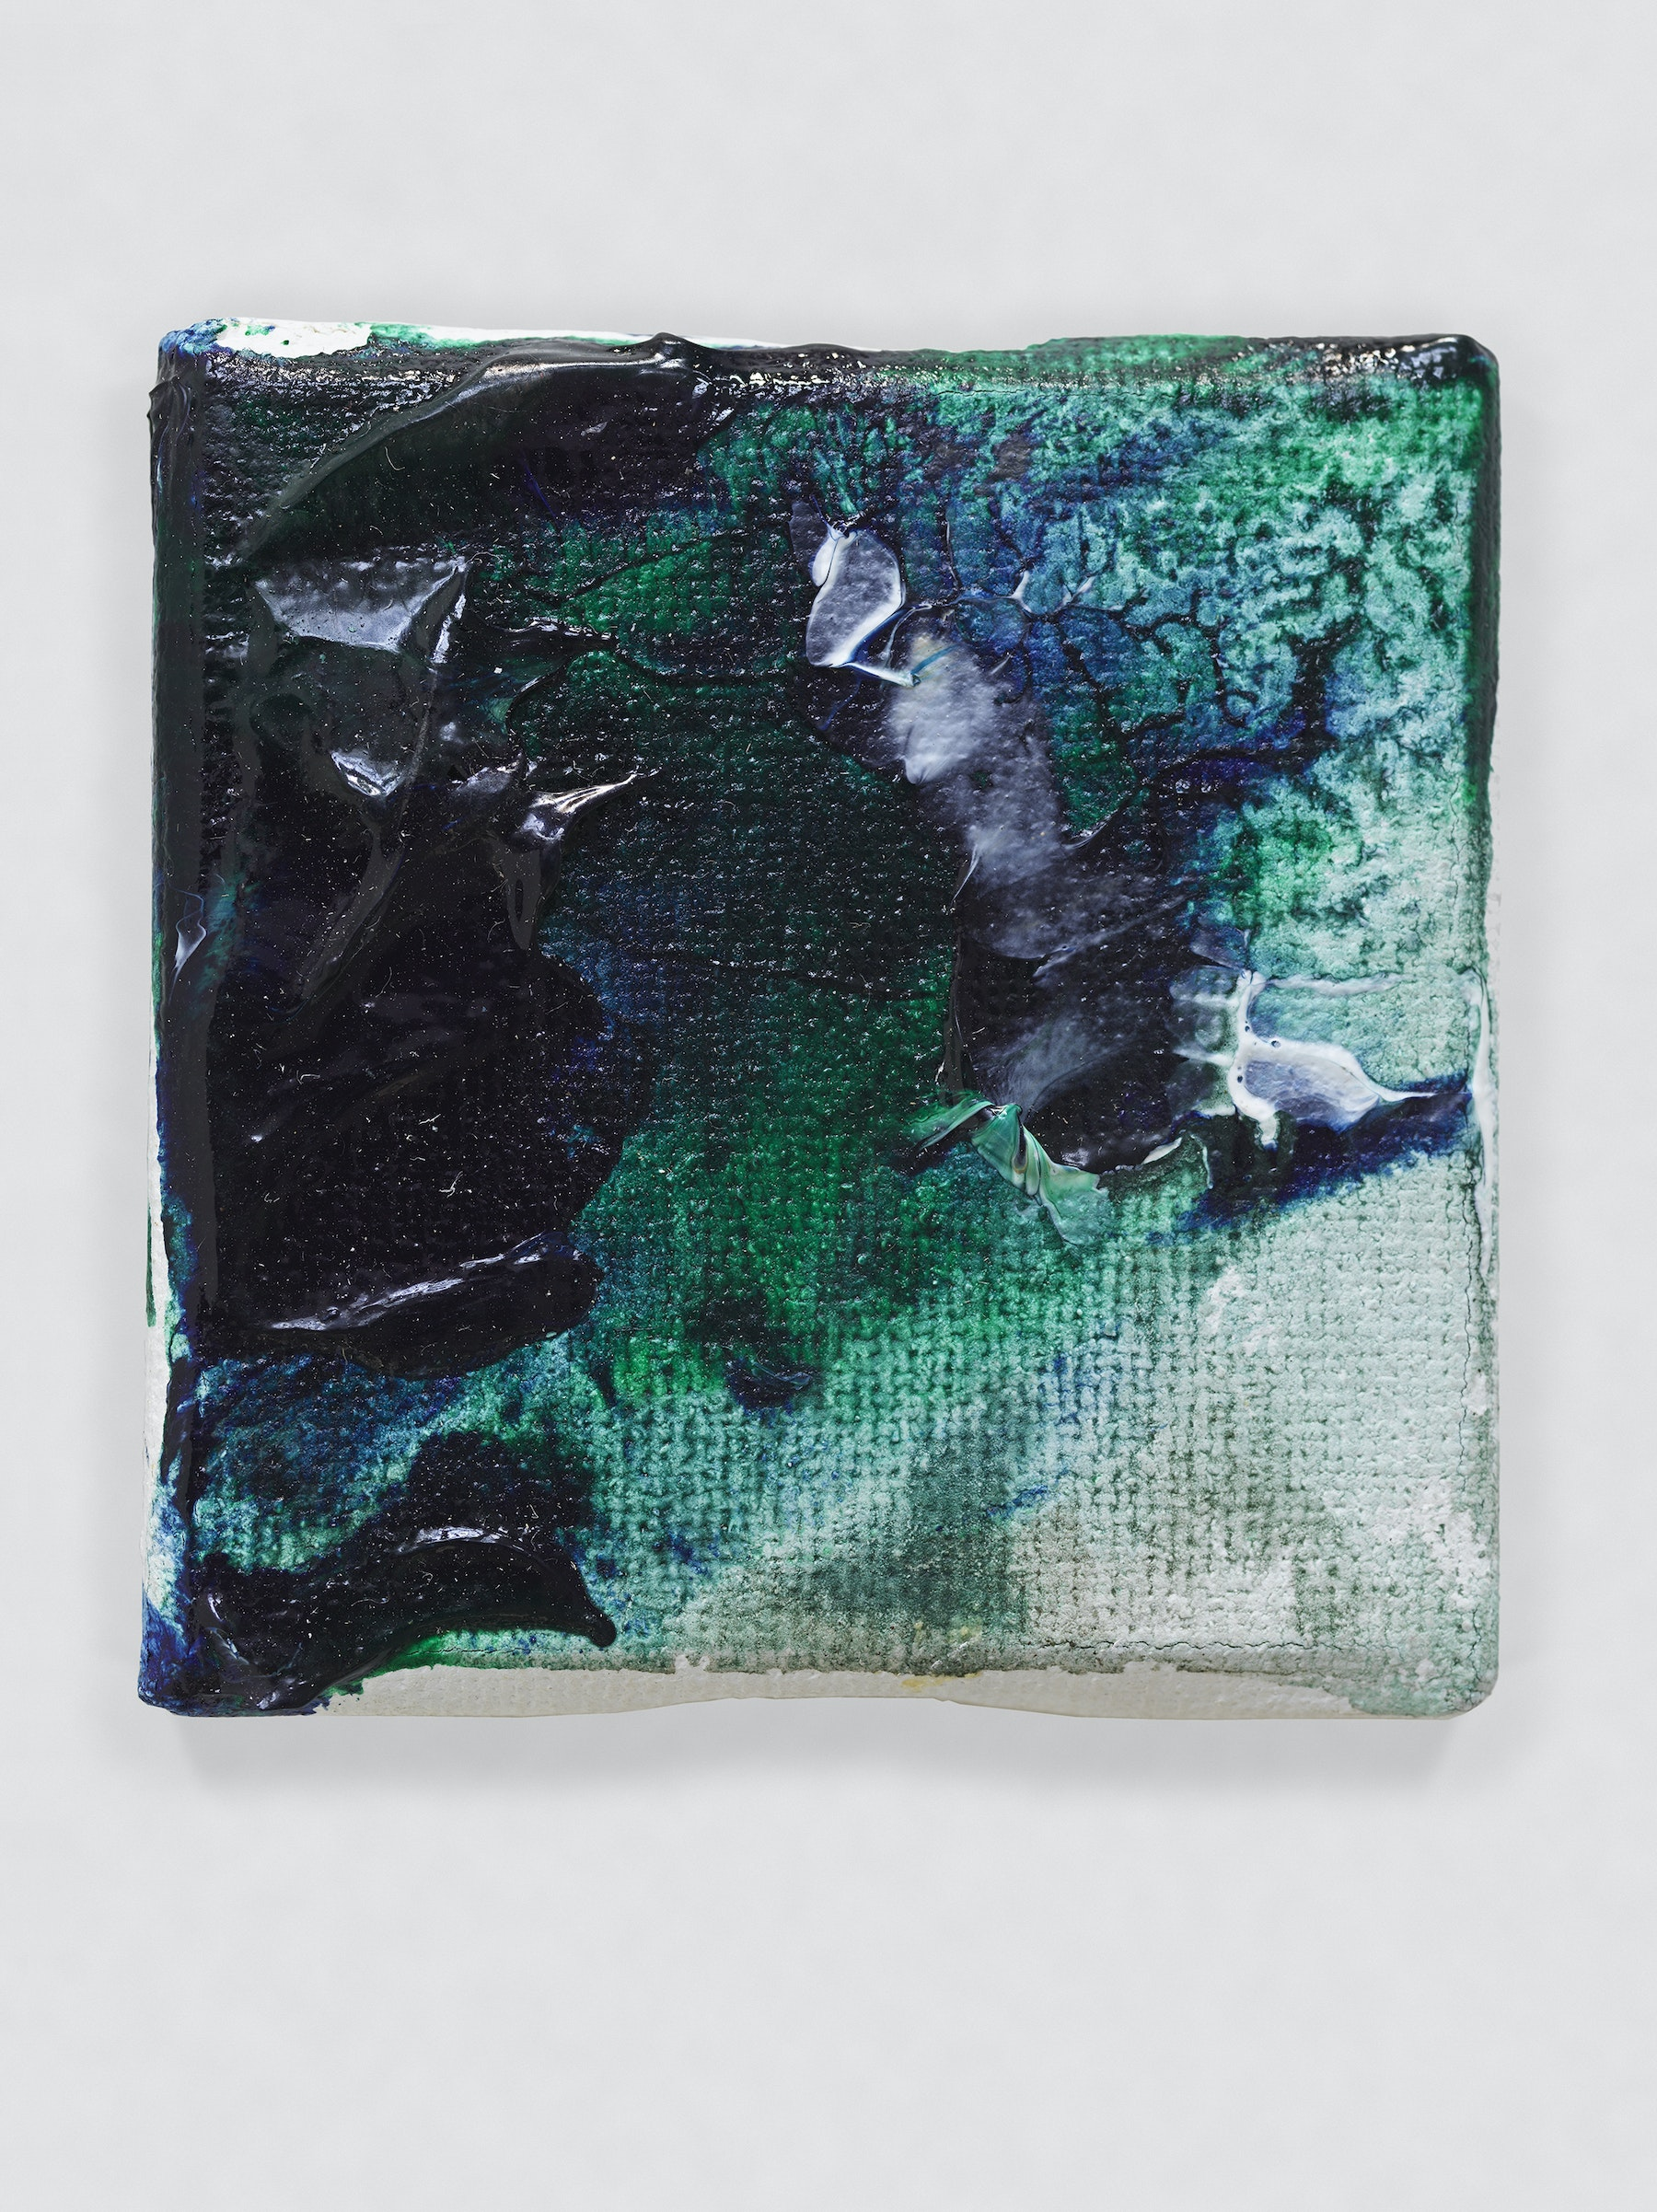 """Louise Fishman """"UNTITLED,"""" 2014 Oil on canvas 2 x 2"""" [HxW] (5.08 x 5.08 cm) Inventory #FIS152 Courtesy of the artist and Vielmetter Los Angeles Photo credit: Genevieve Hanson Signed and dated on verso"""